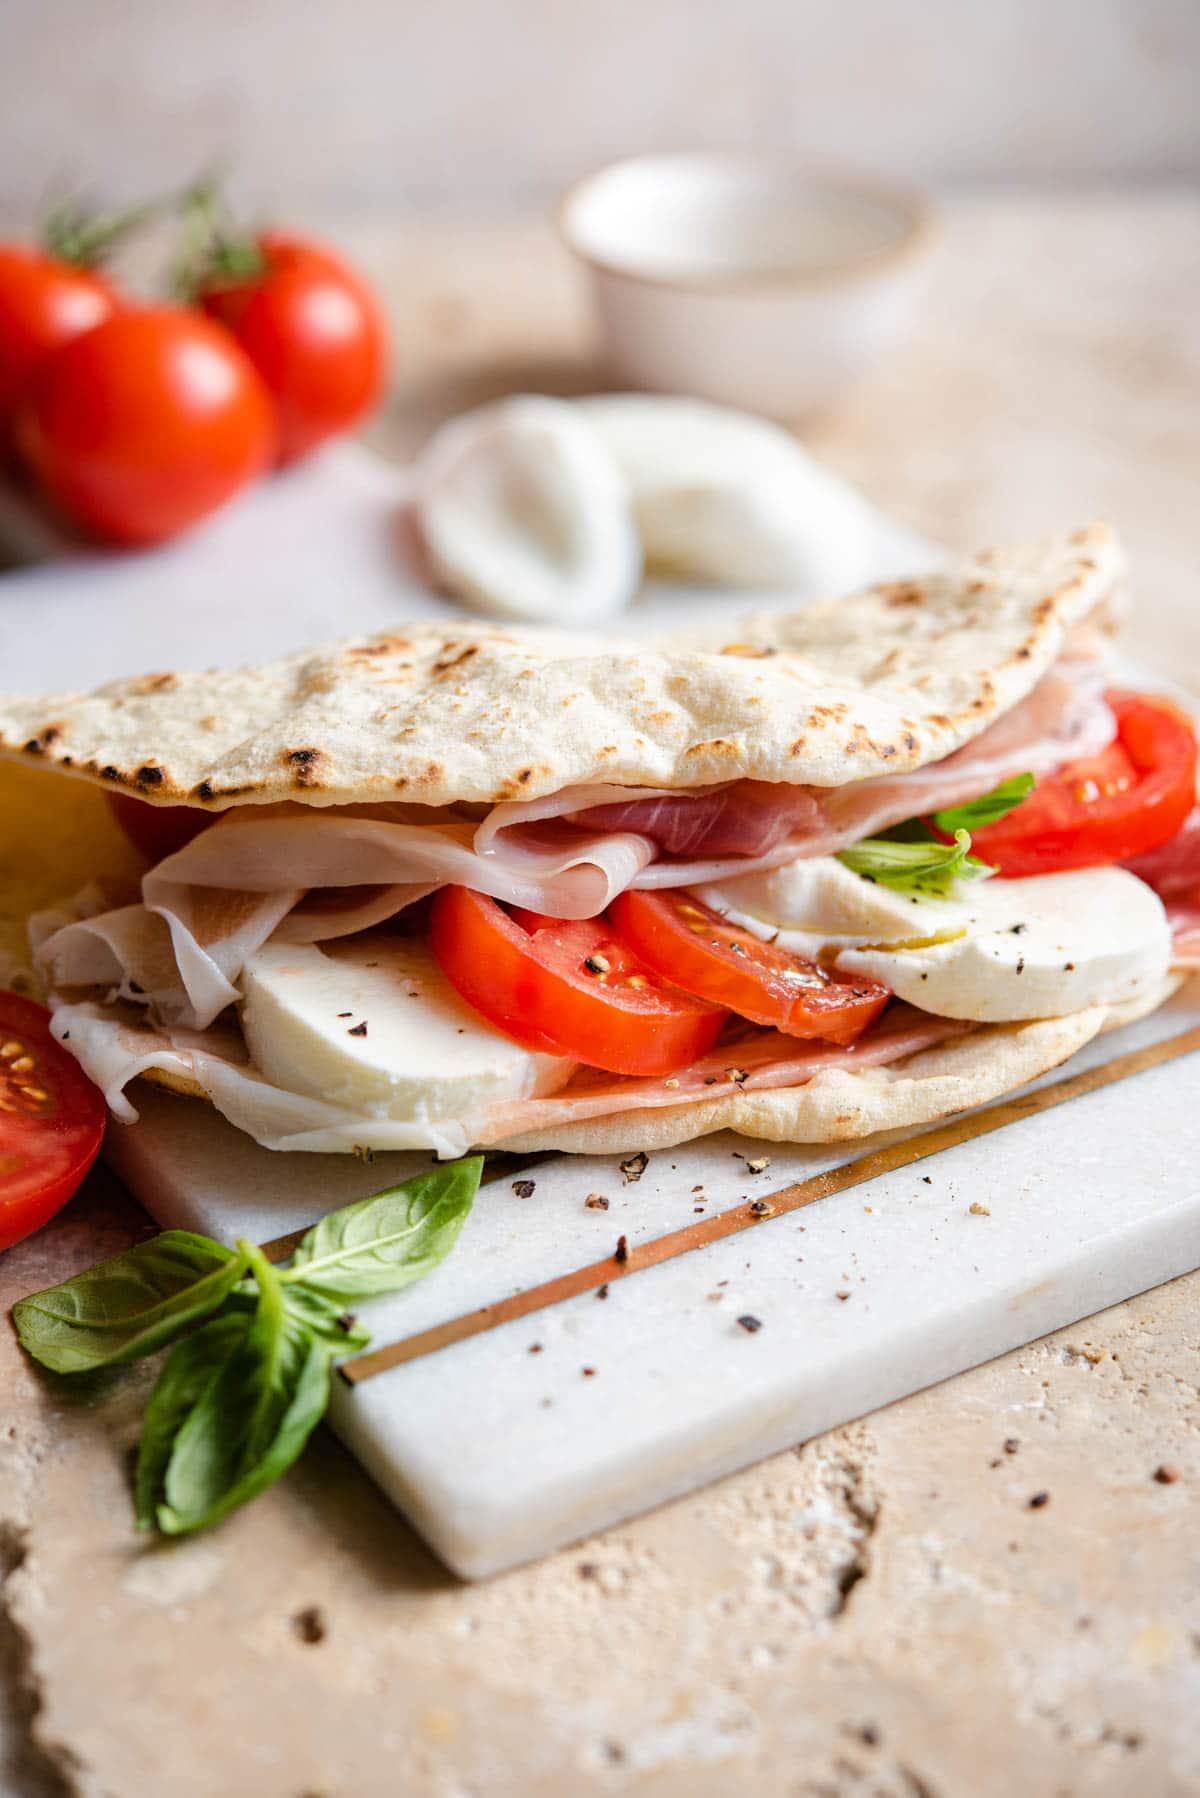 A Piadina flatbread stuffed with tomatoes, mozzarella and prosciutto sitting on a marble board